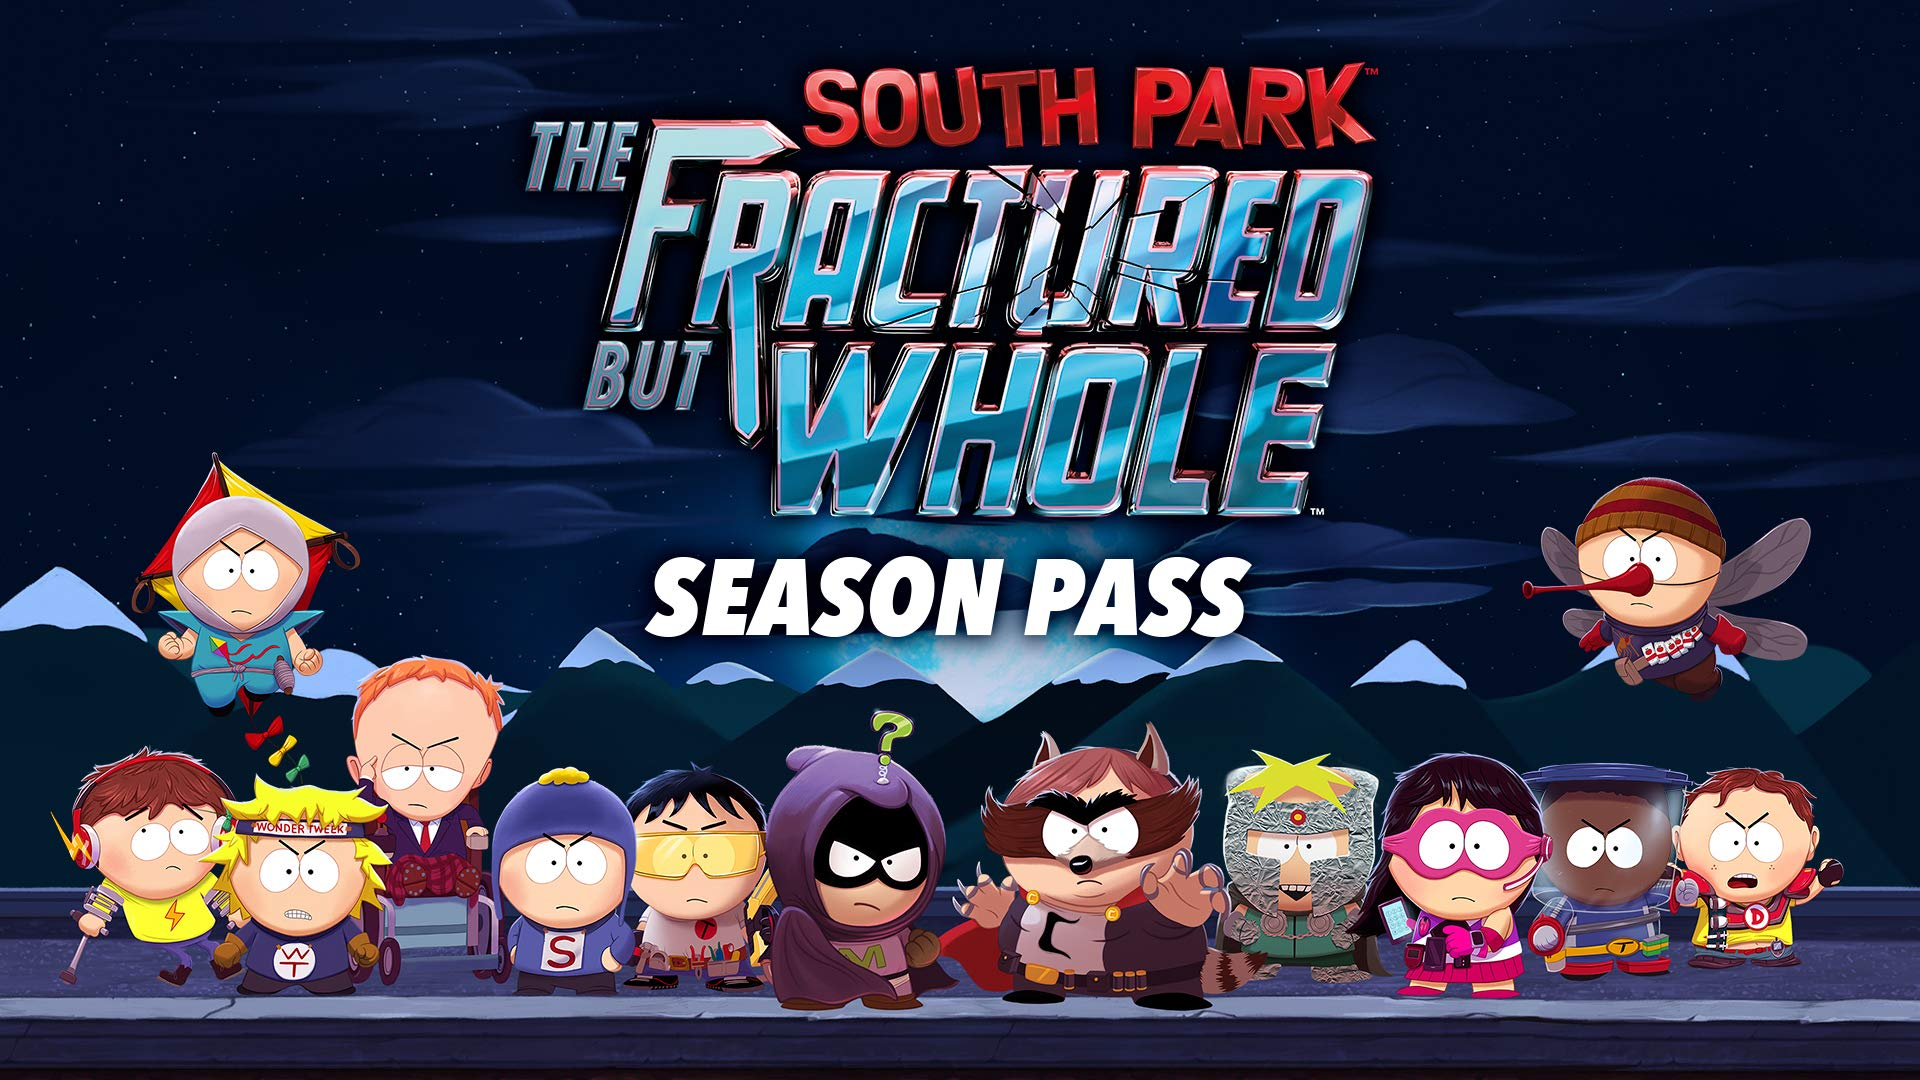 South Park : The Fractured but Whole Season Pass - Nintendo Switch [Digital Code]